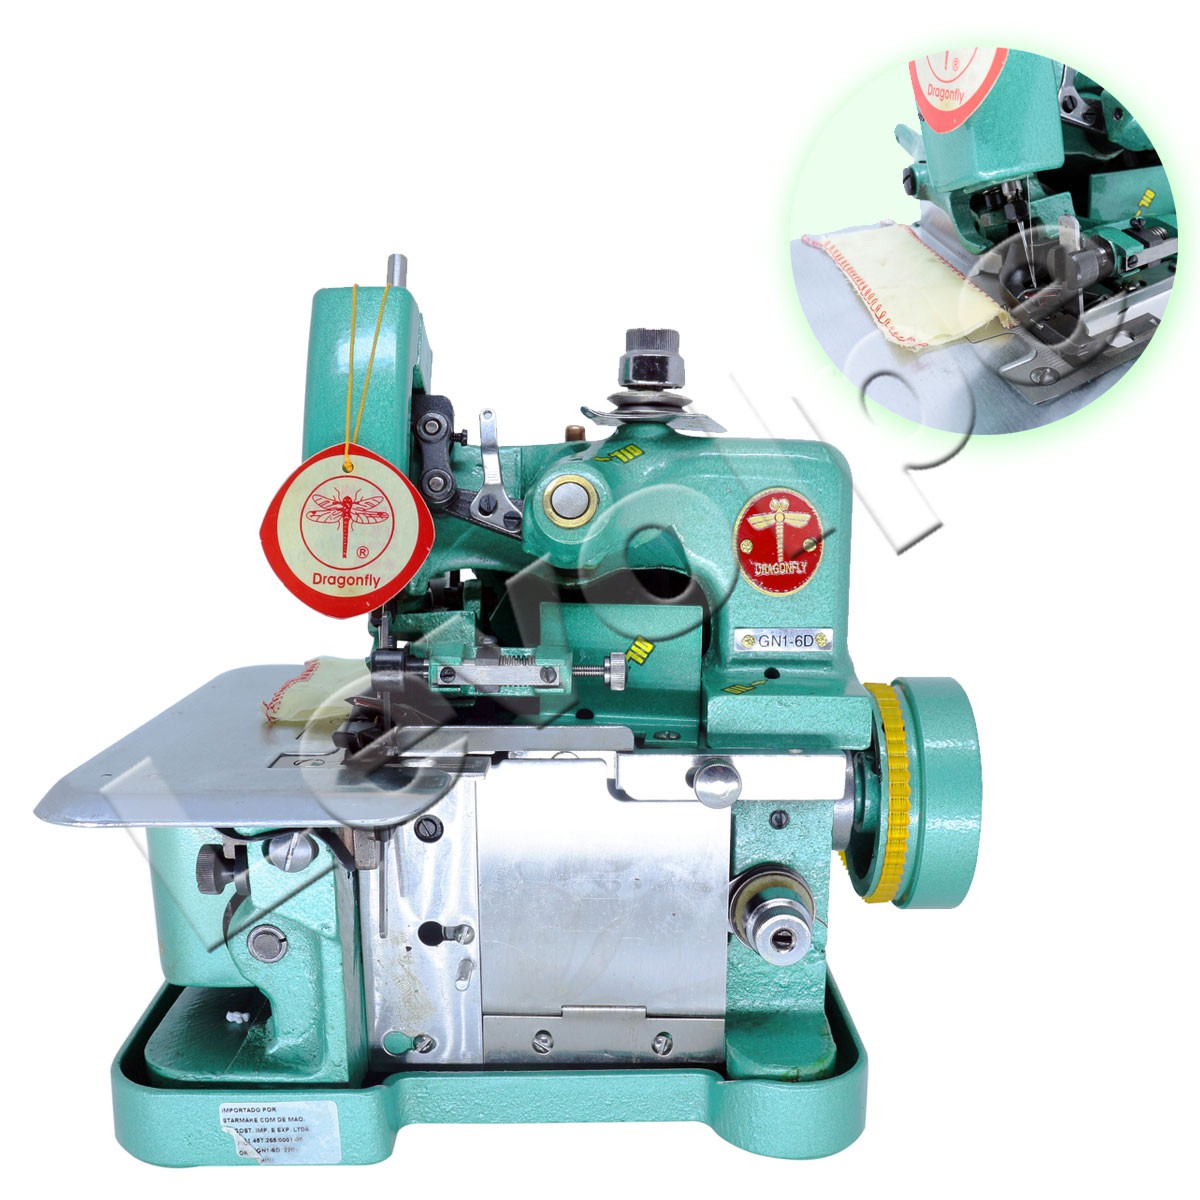 MAQUINA COSTURA OVERLOCK BUTTERFLY GN1